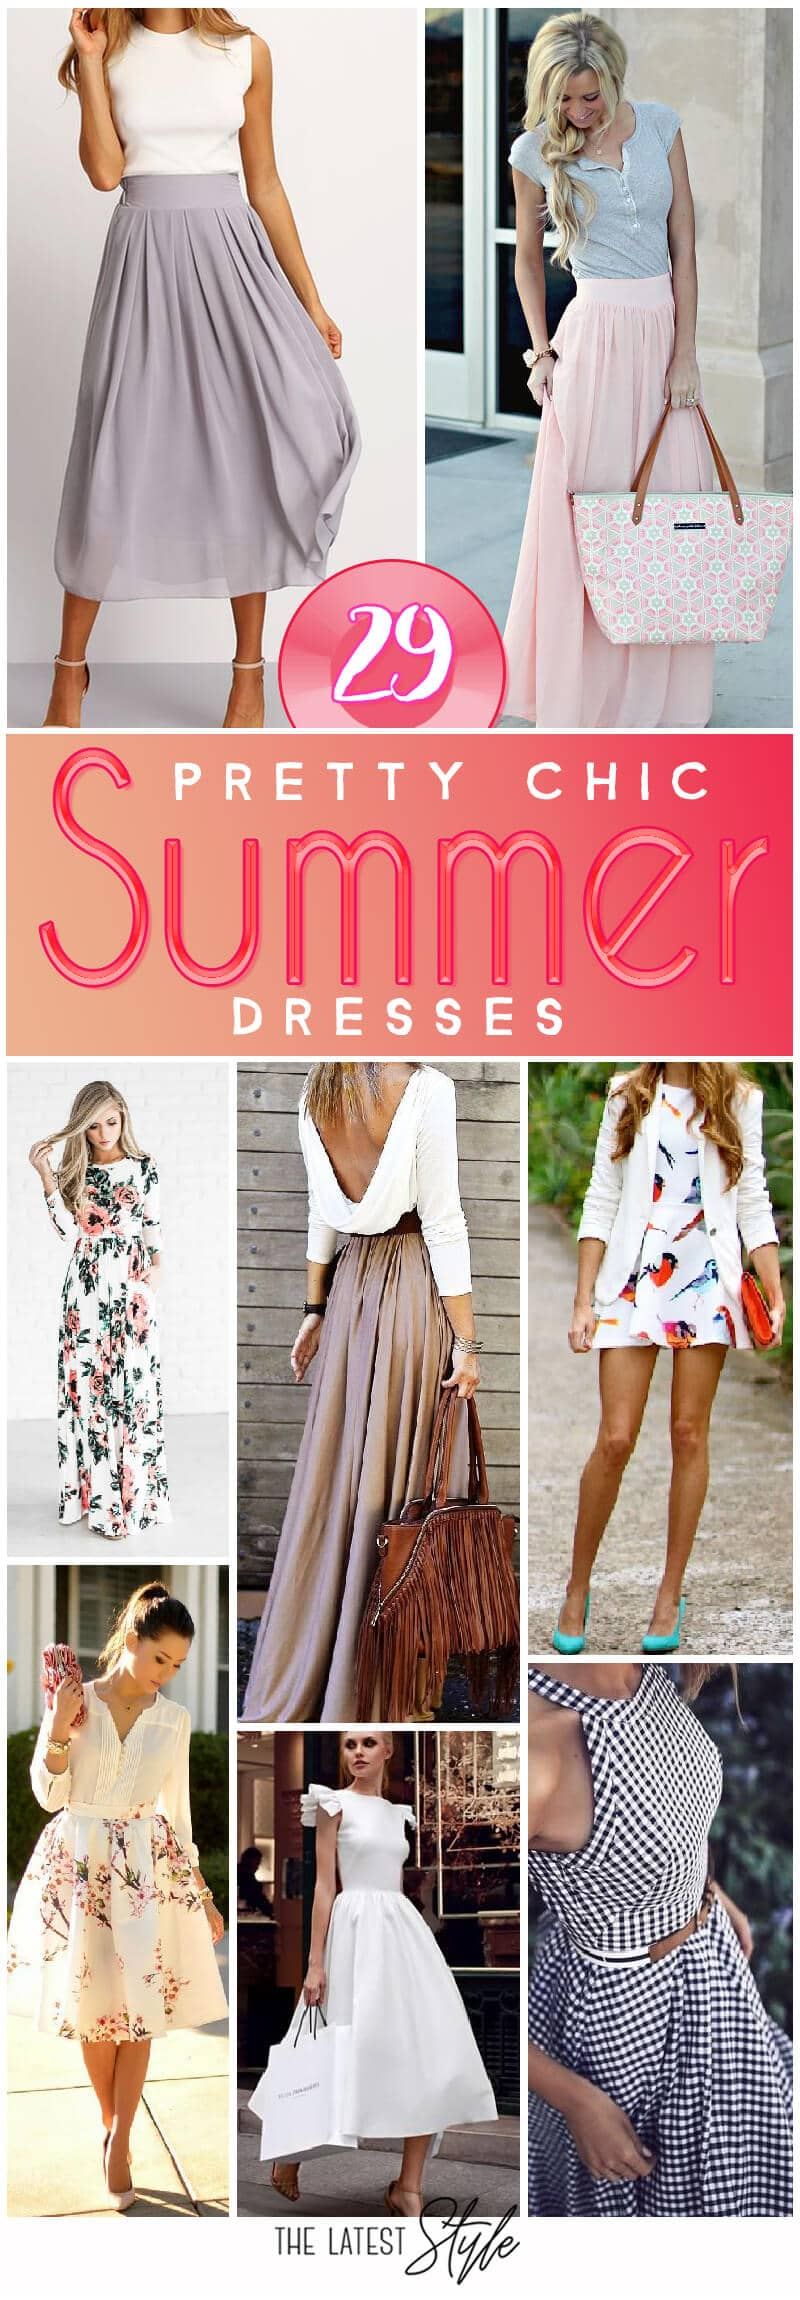 29 Pretty Chic Summer Outfits